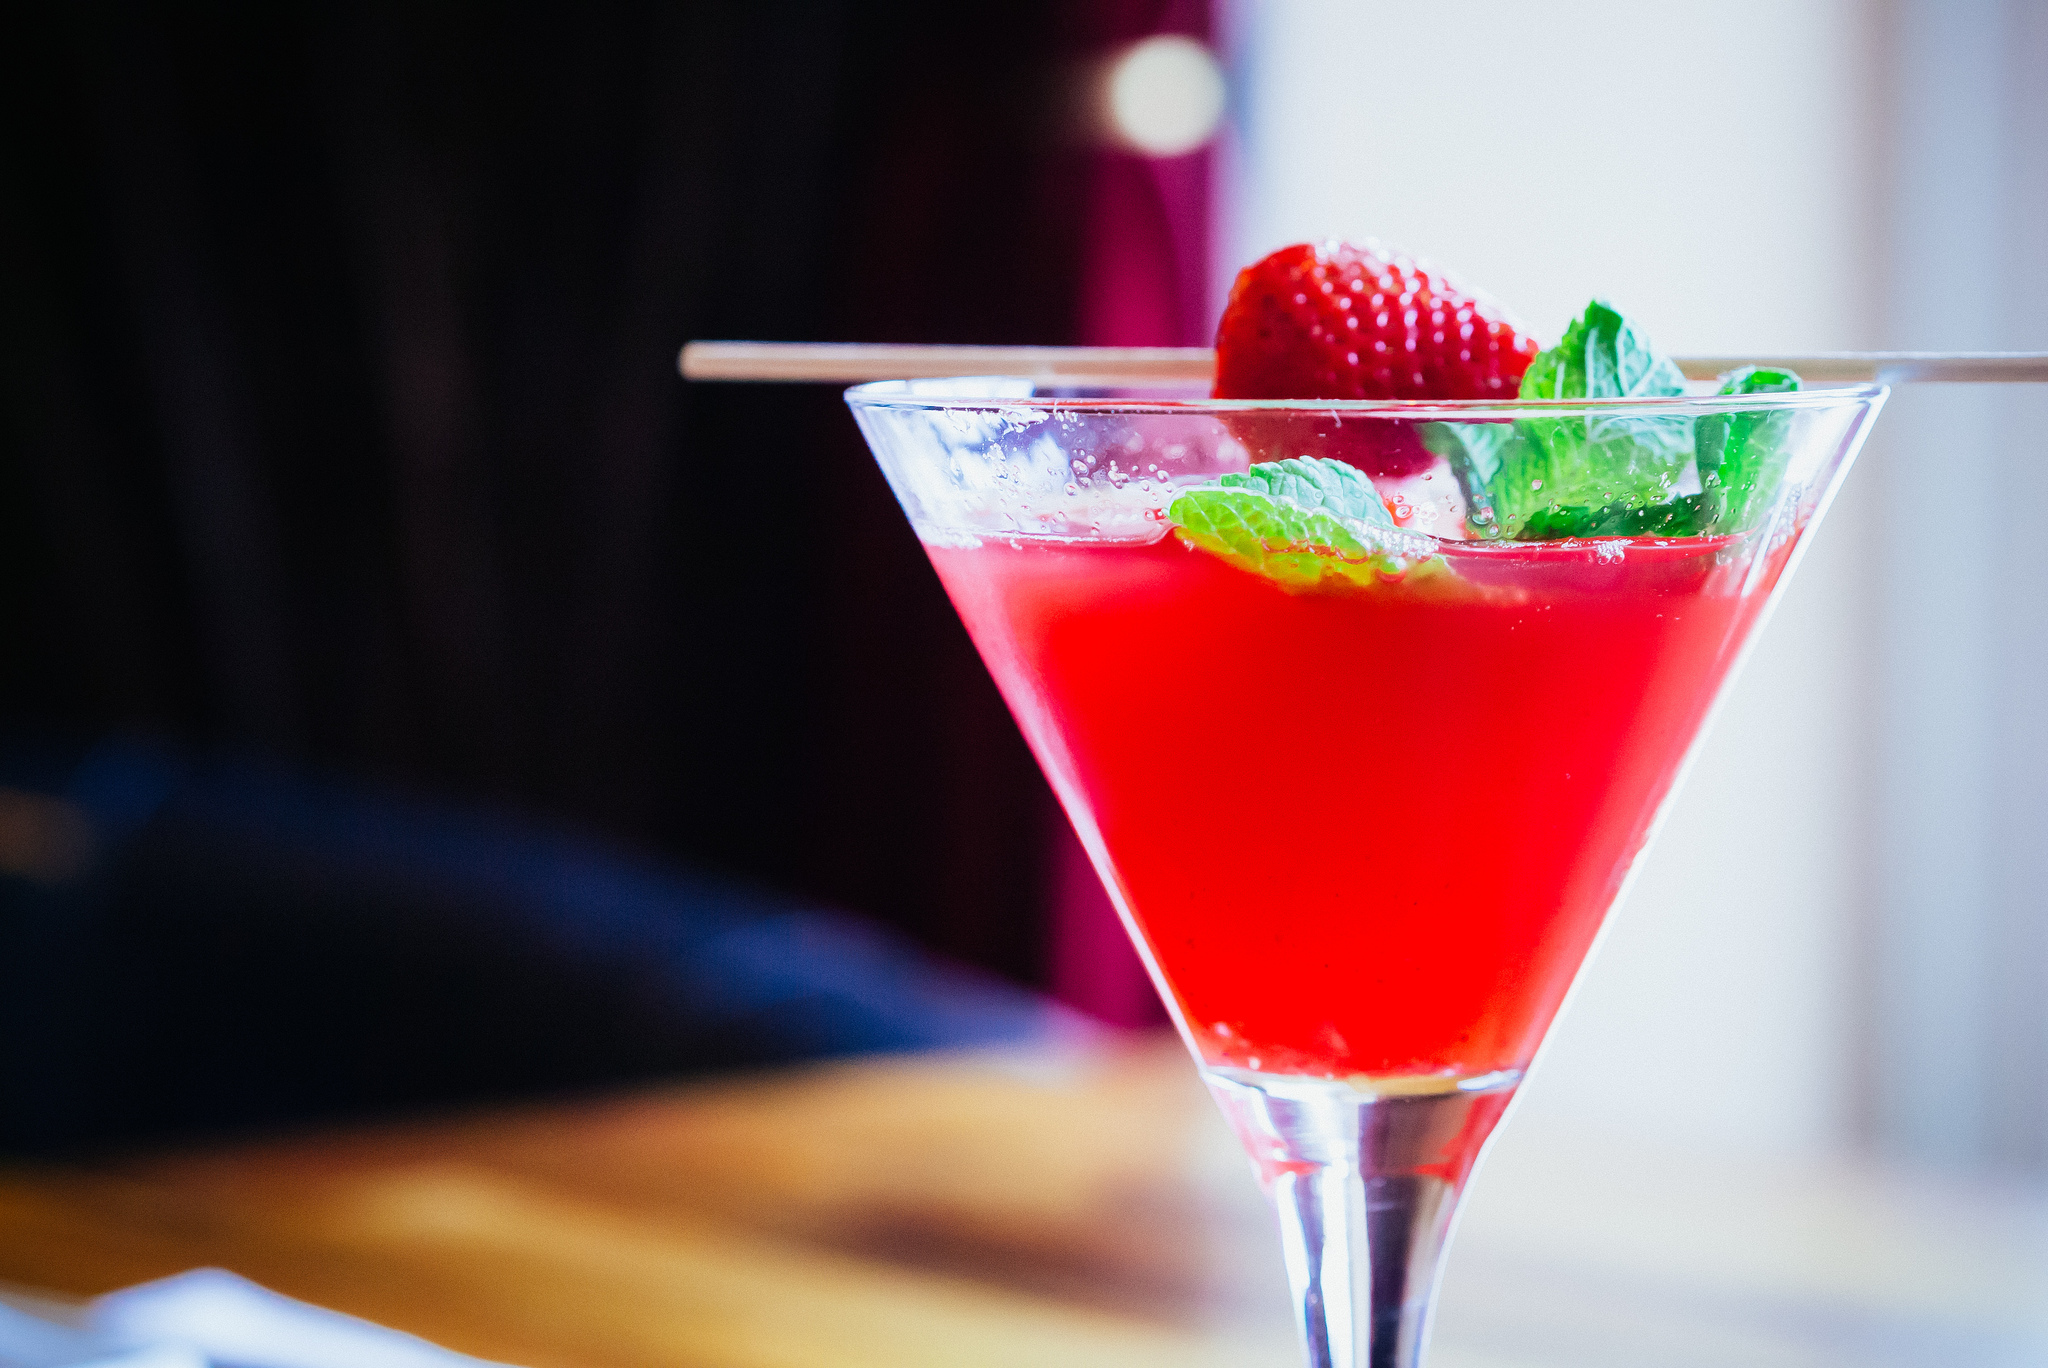 A strawberry martini | © daspunkt / Flickr